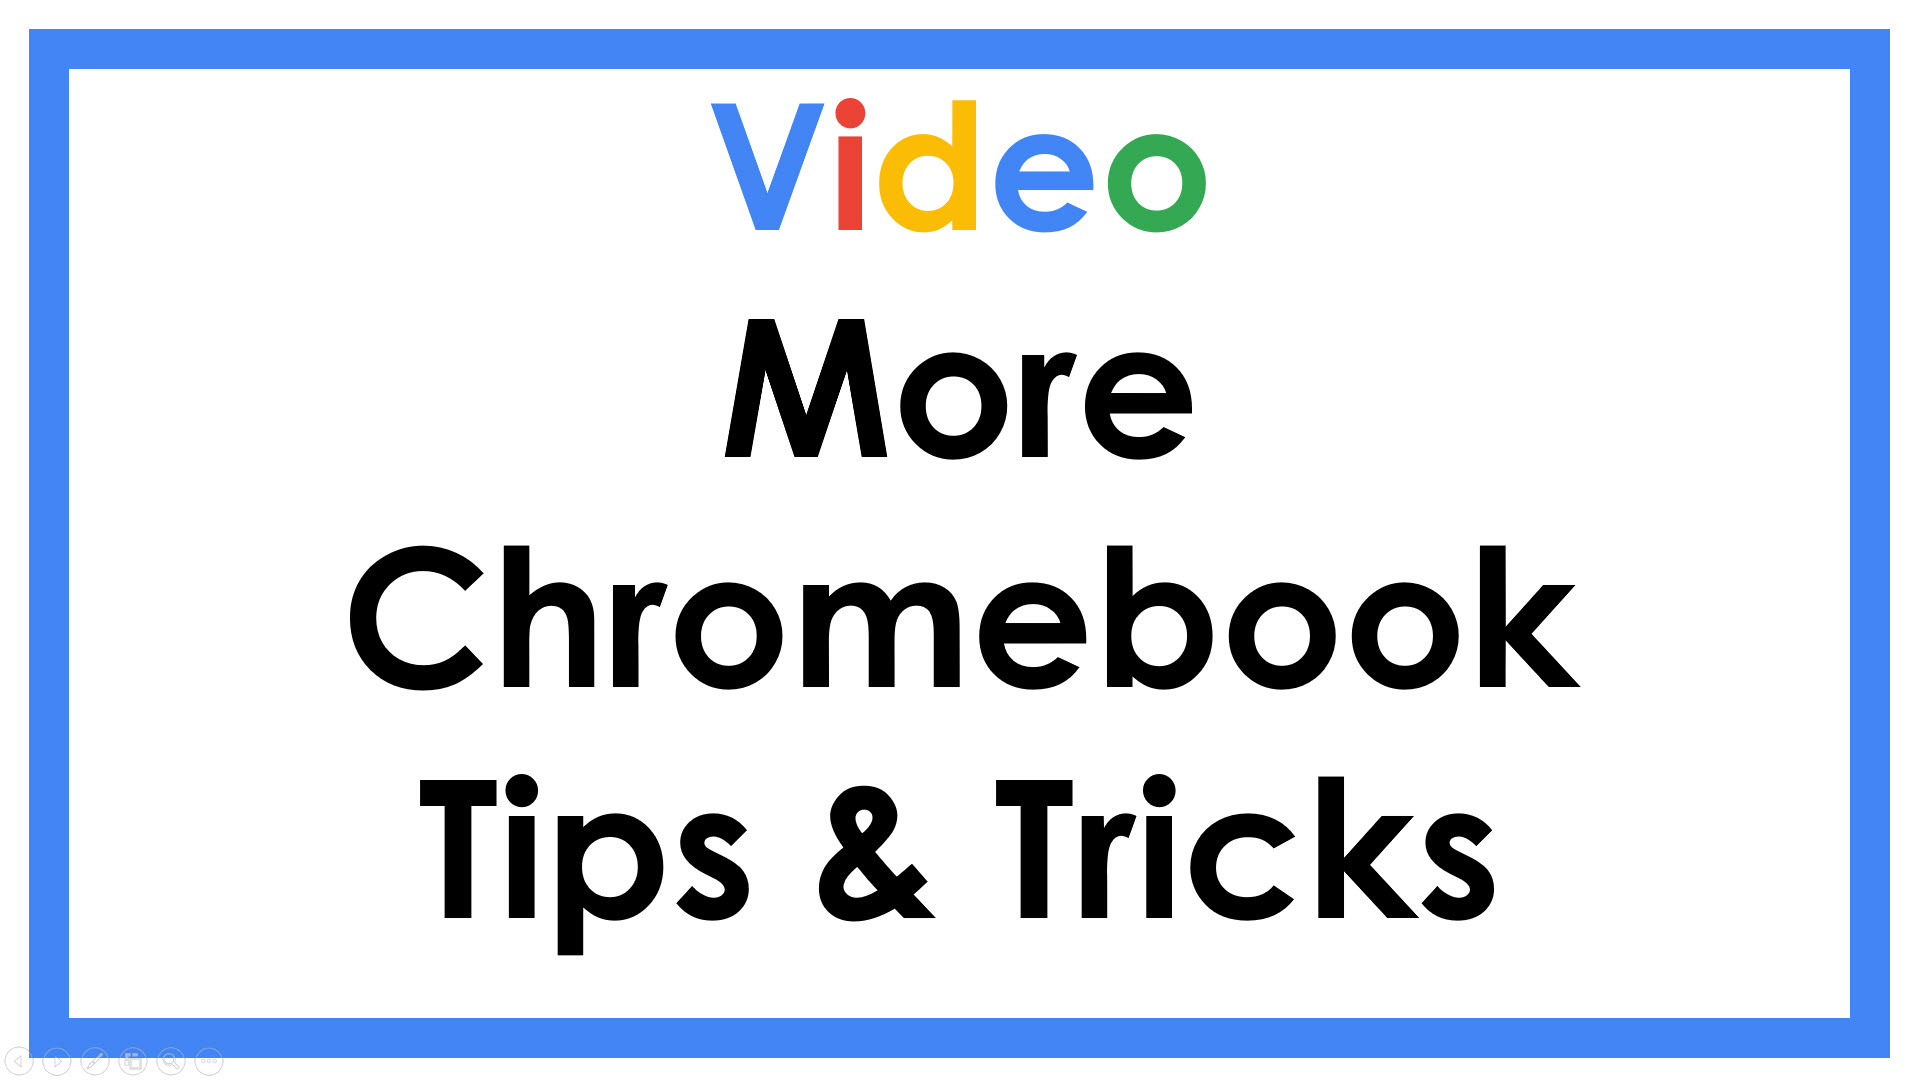 More Chromebook Tips & Tricks